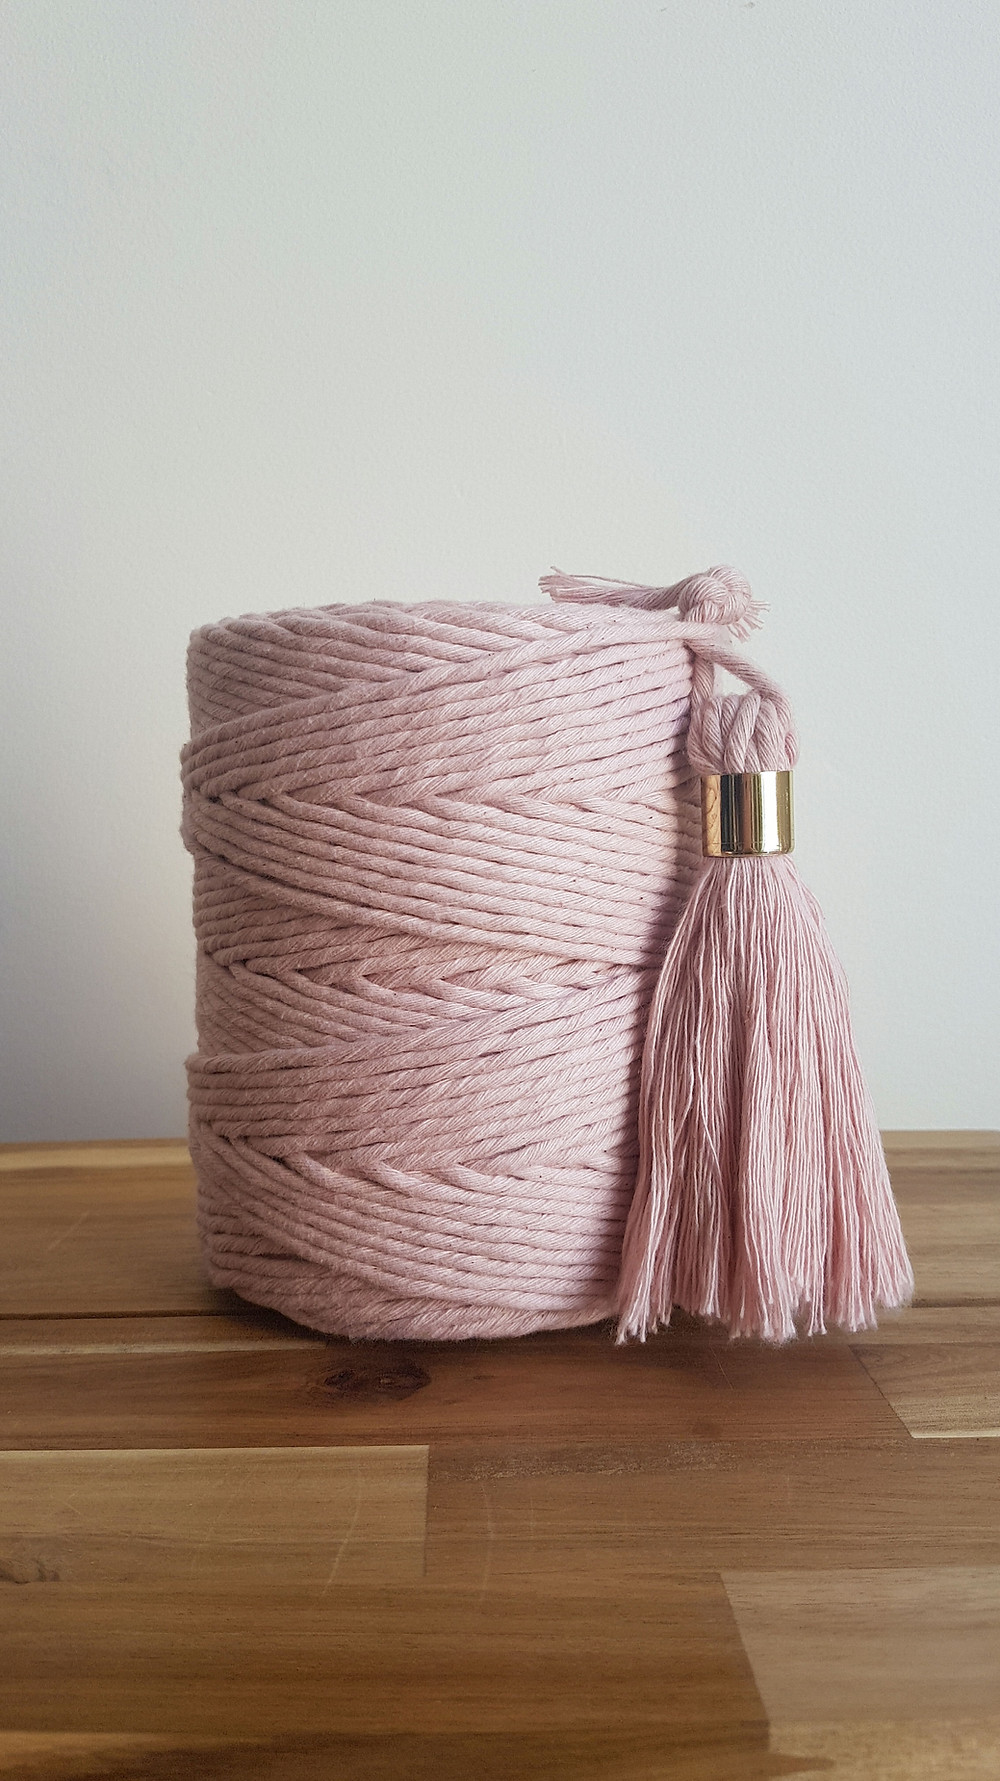 https://www.macrameuk.com/product-page/stop-it-i-m-blushing-single-ply-macrame-cord